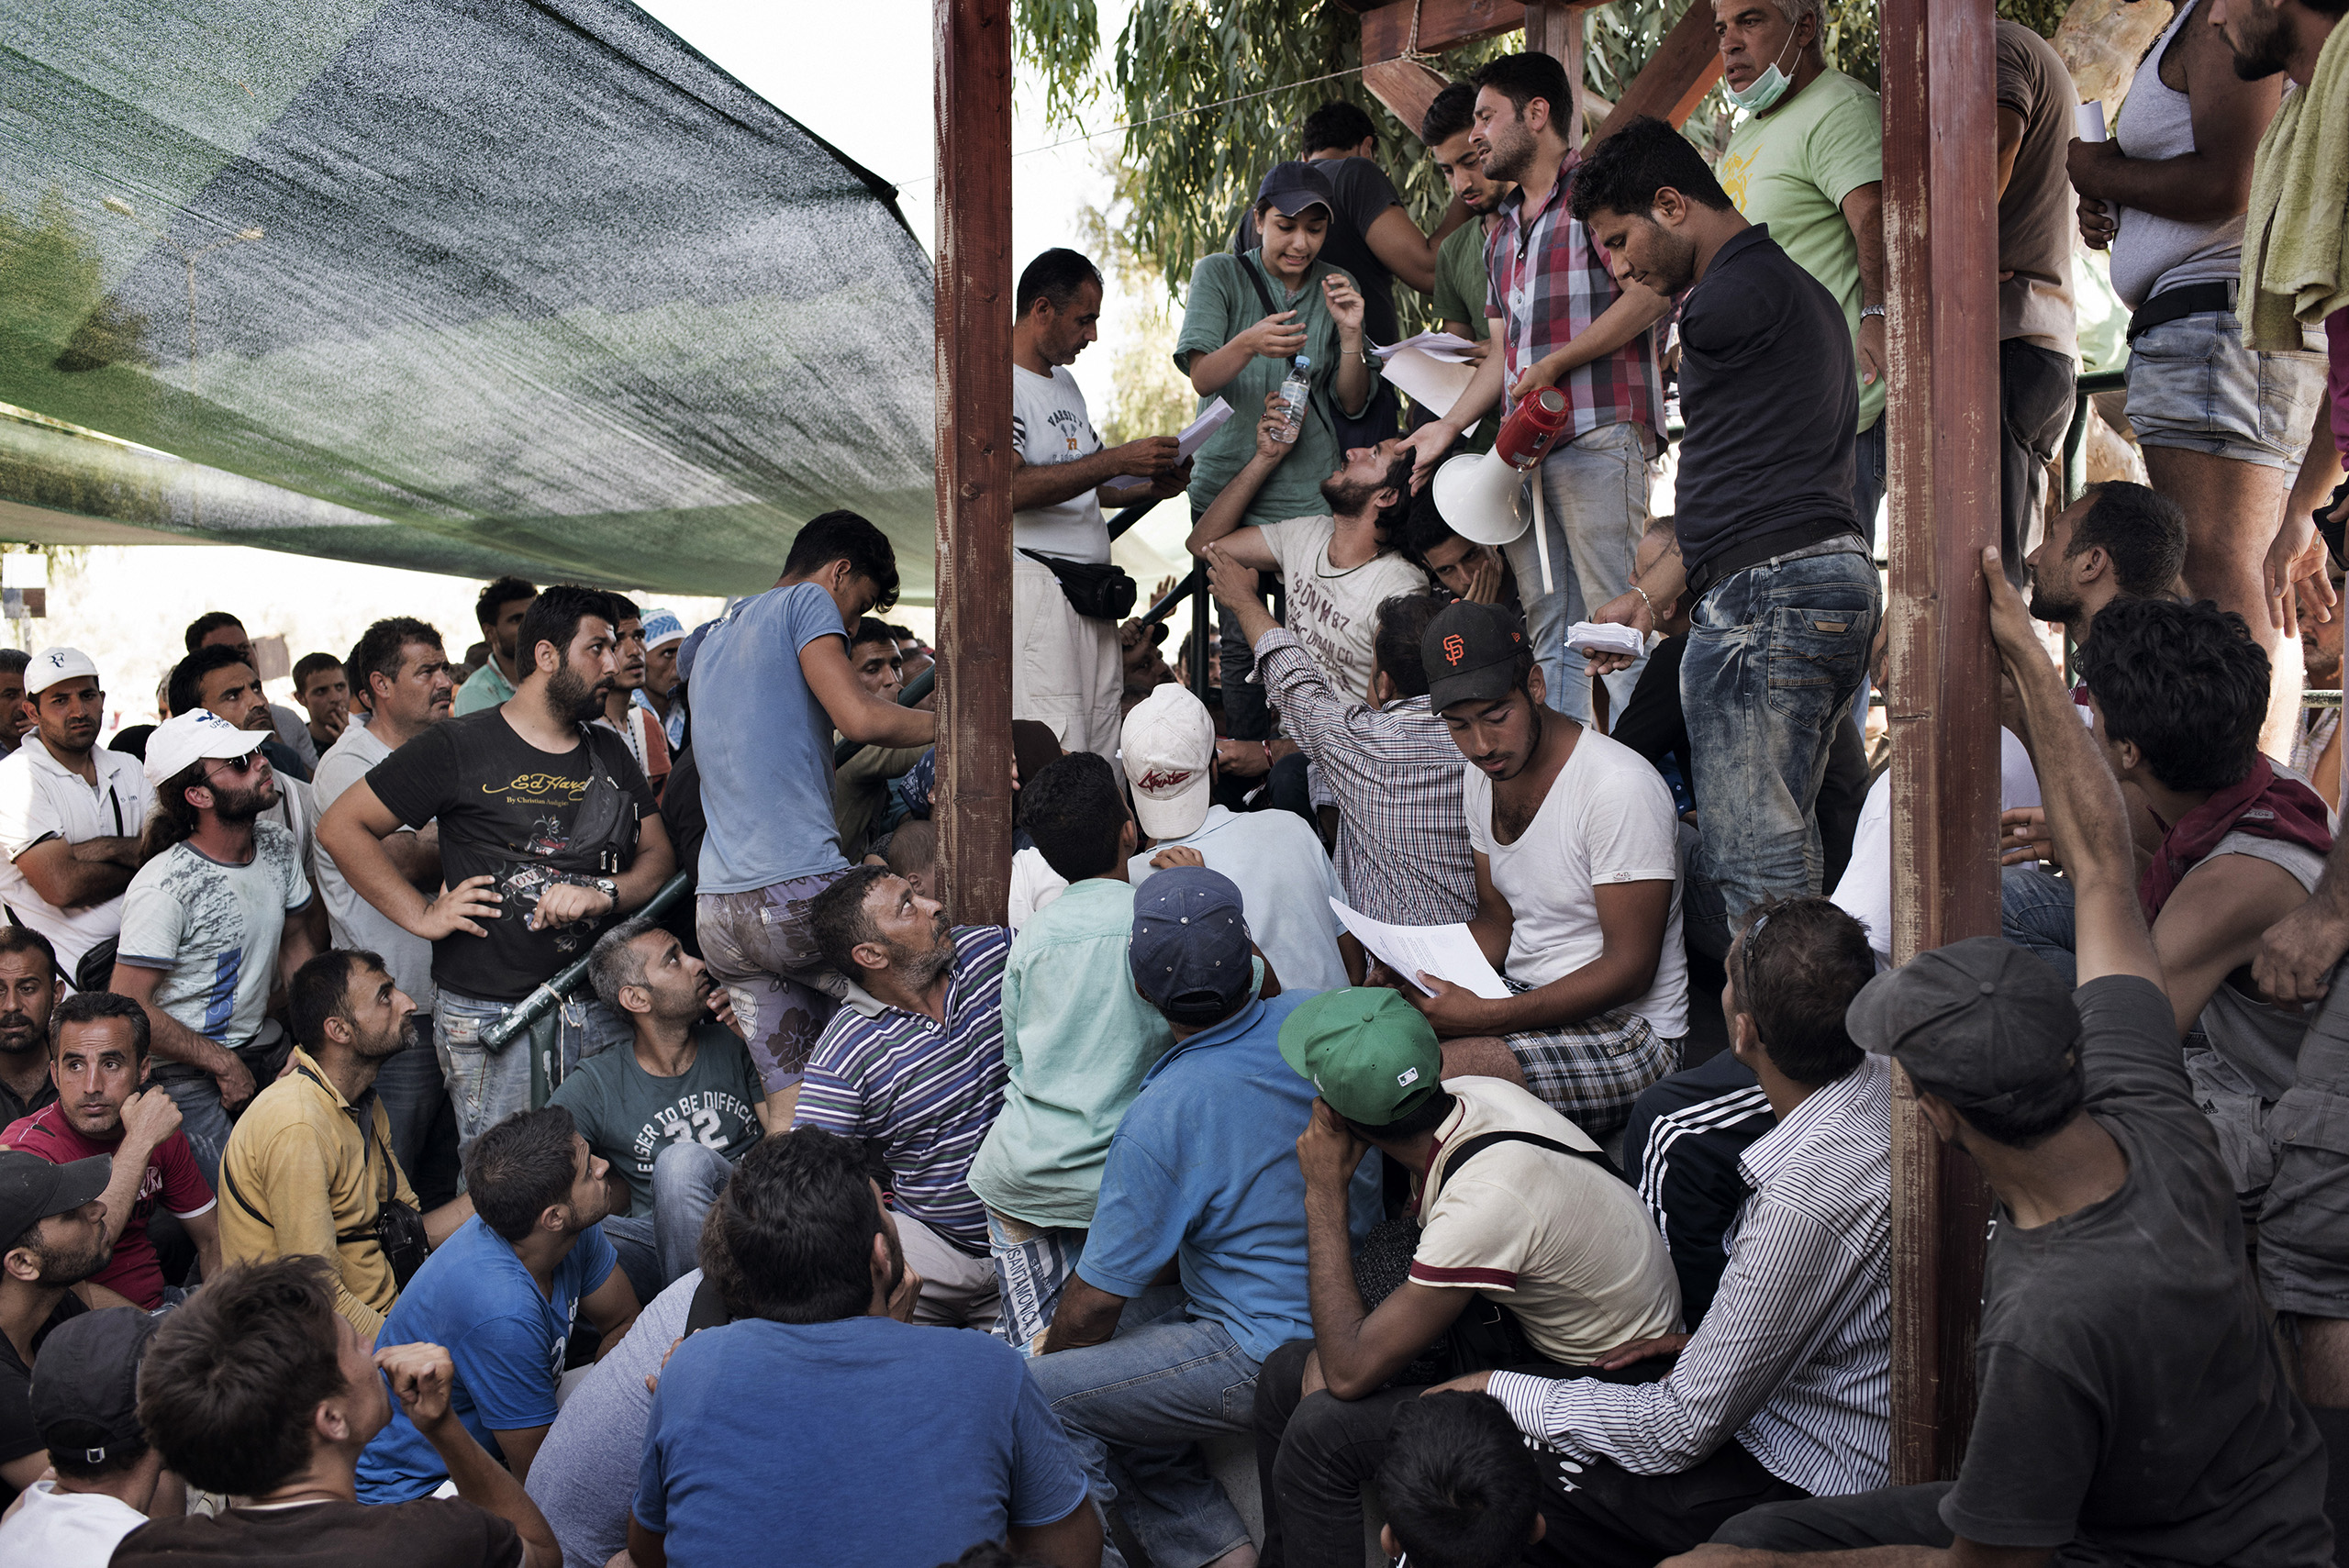 Migrants wait at a camp for asylum seekers on the Greek island of Lesbos, on Sept. 4, 2015, to receive registration documents from Greek authorities that will allow them to leave the island on ferries and travel onward toward Western Europe.